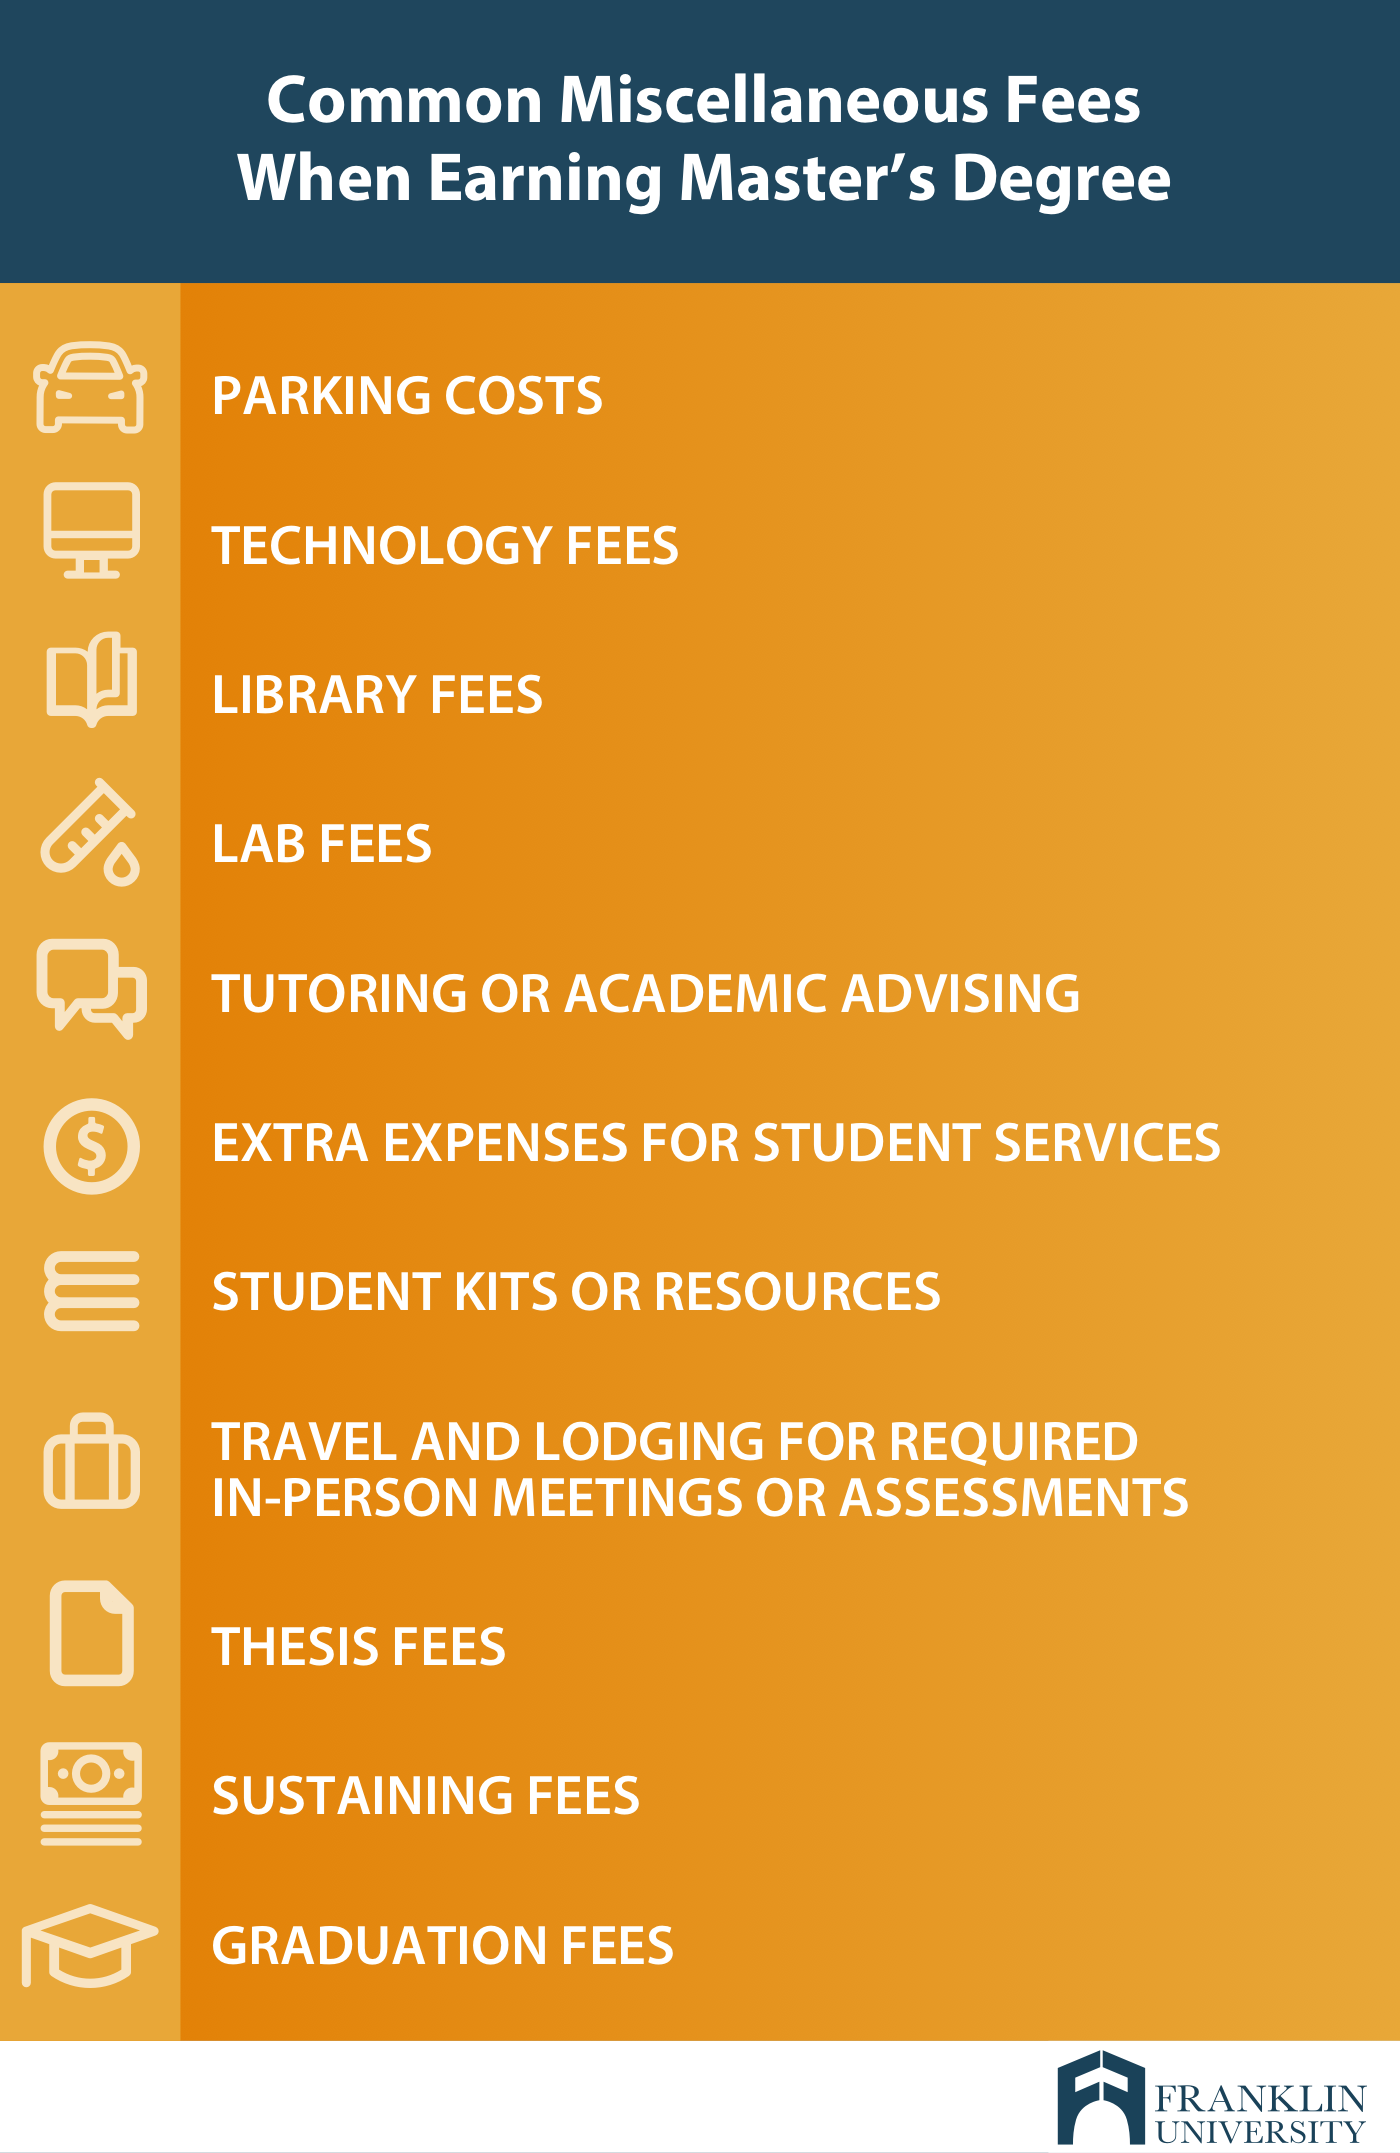 graphic describes the common miscellaneous fees when earning a masters degree